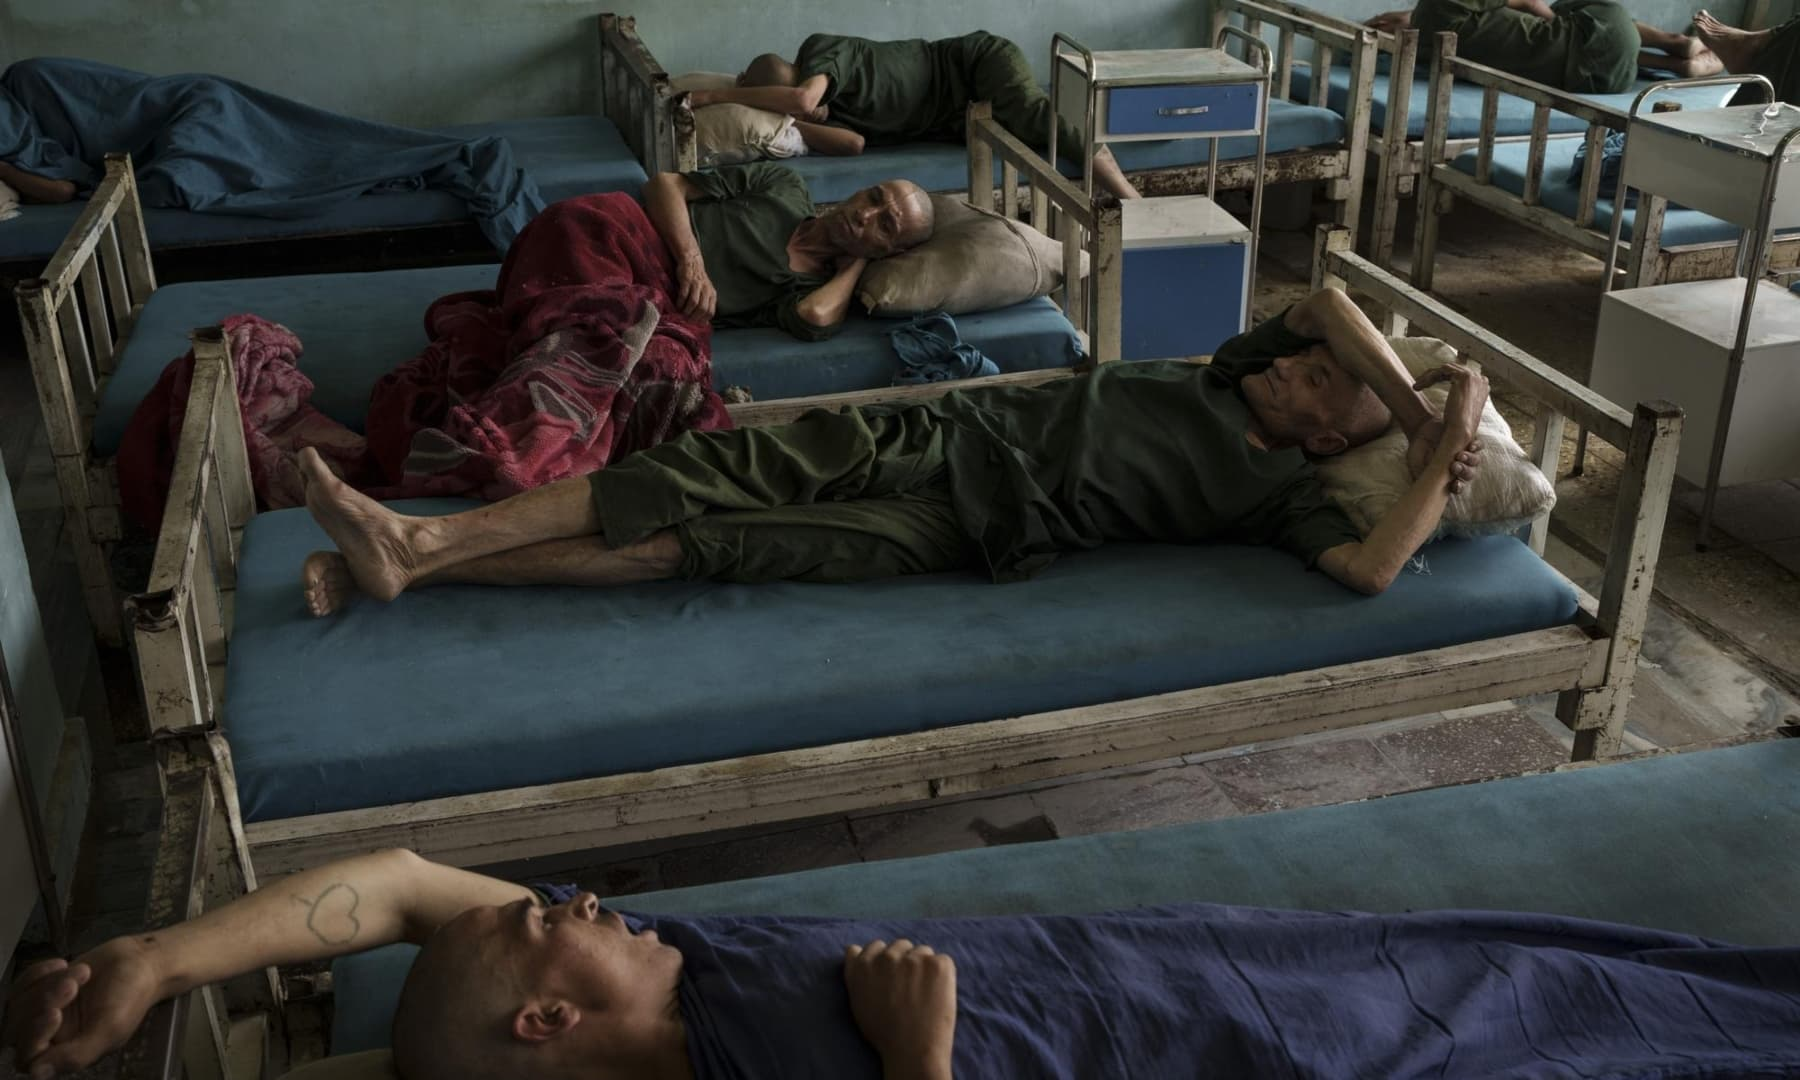 Drug users detained during a Taliban raid rest at the detoxification ward of the Avicenna Medical Hospital for Drug Treatment in Kabul, Afghanistan, October 4, 2021. — AP